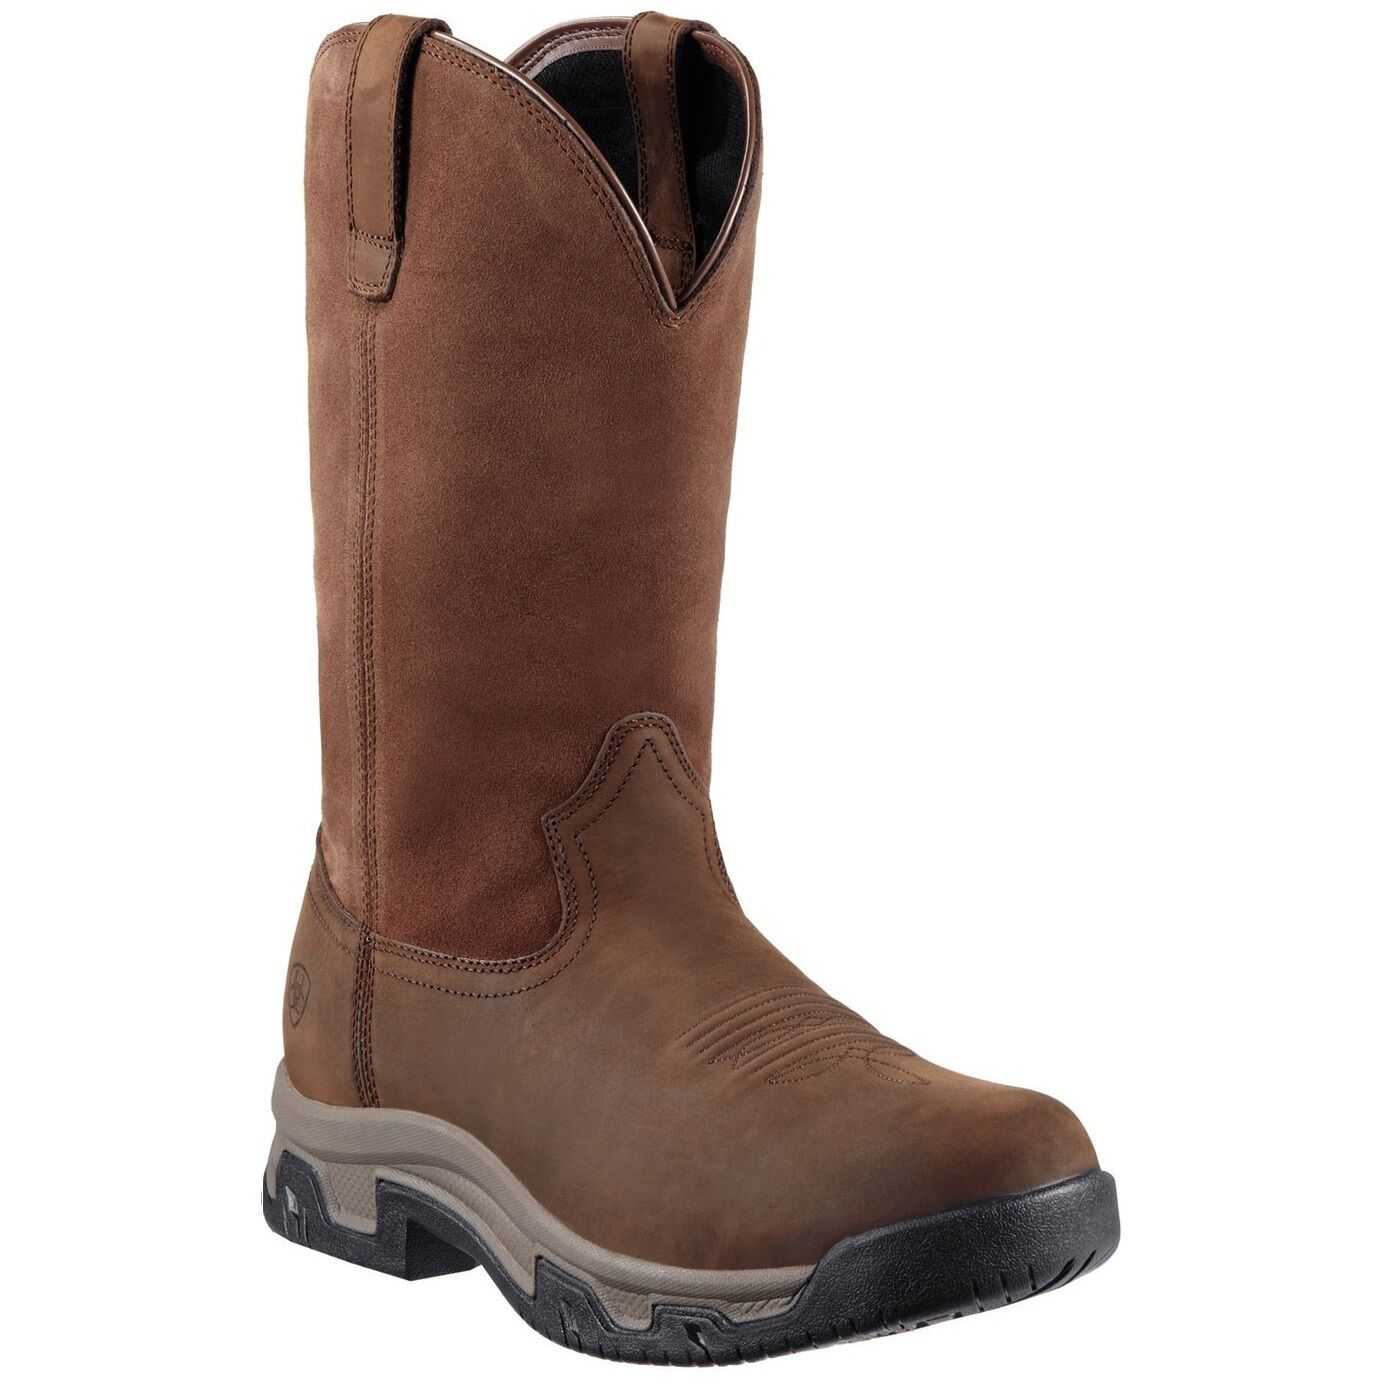 Ariat® Men's Terrain Pull-on H2O Distressed Brown Waterproof Boots 10011829